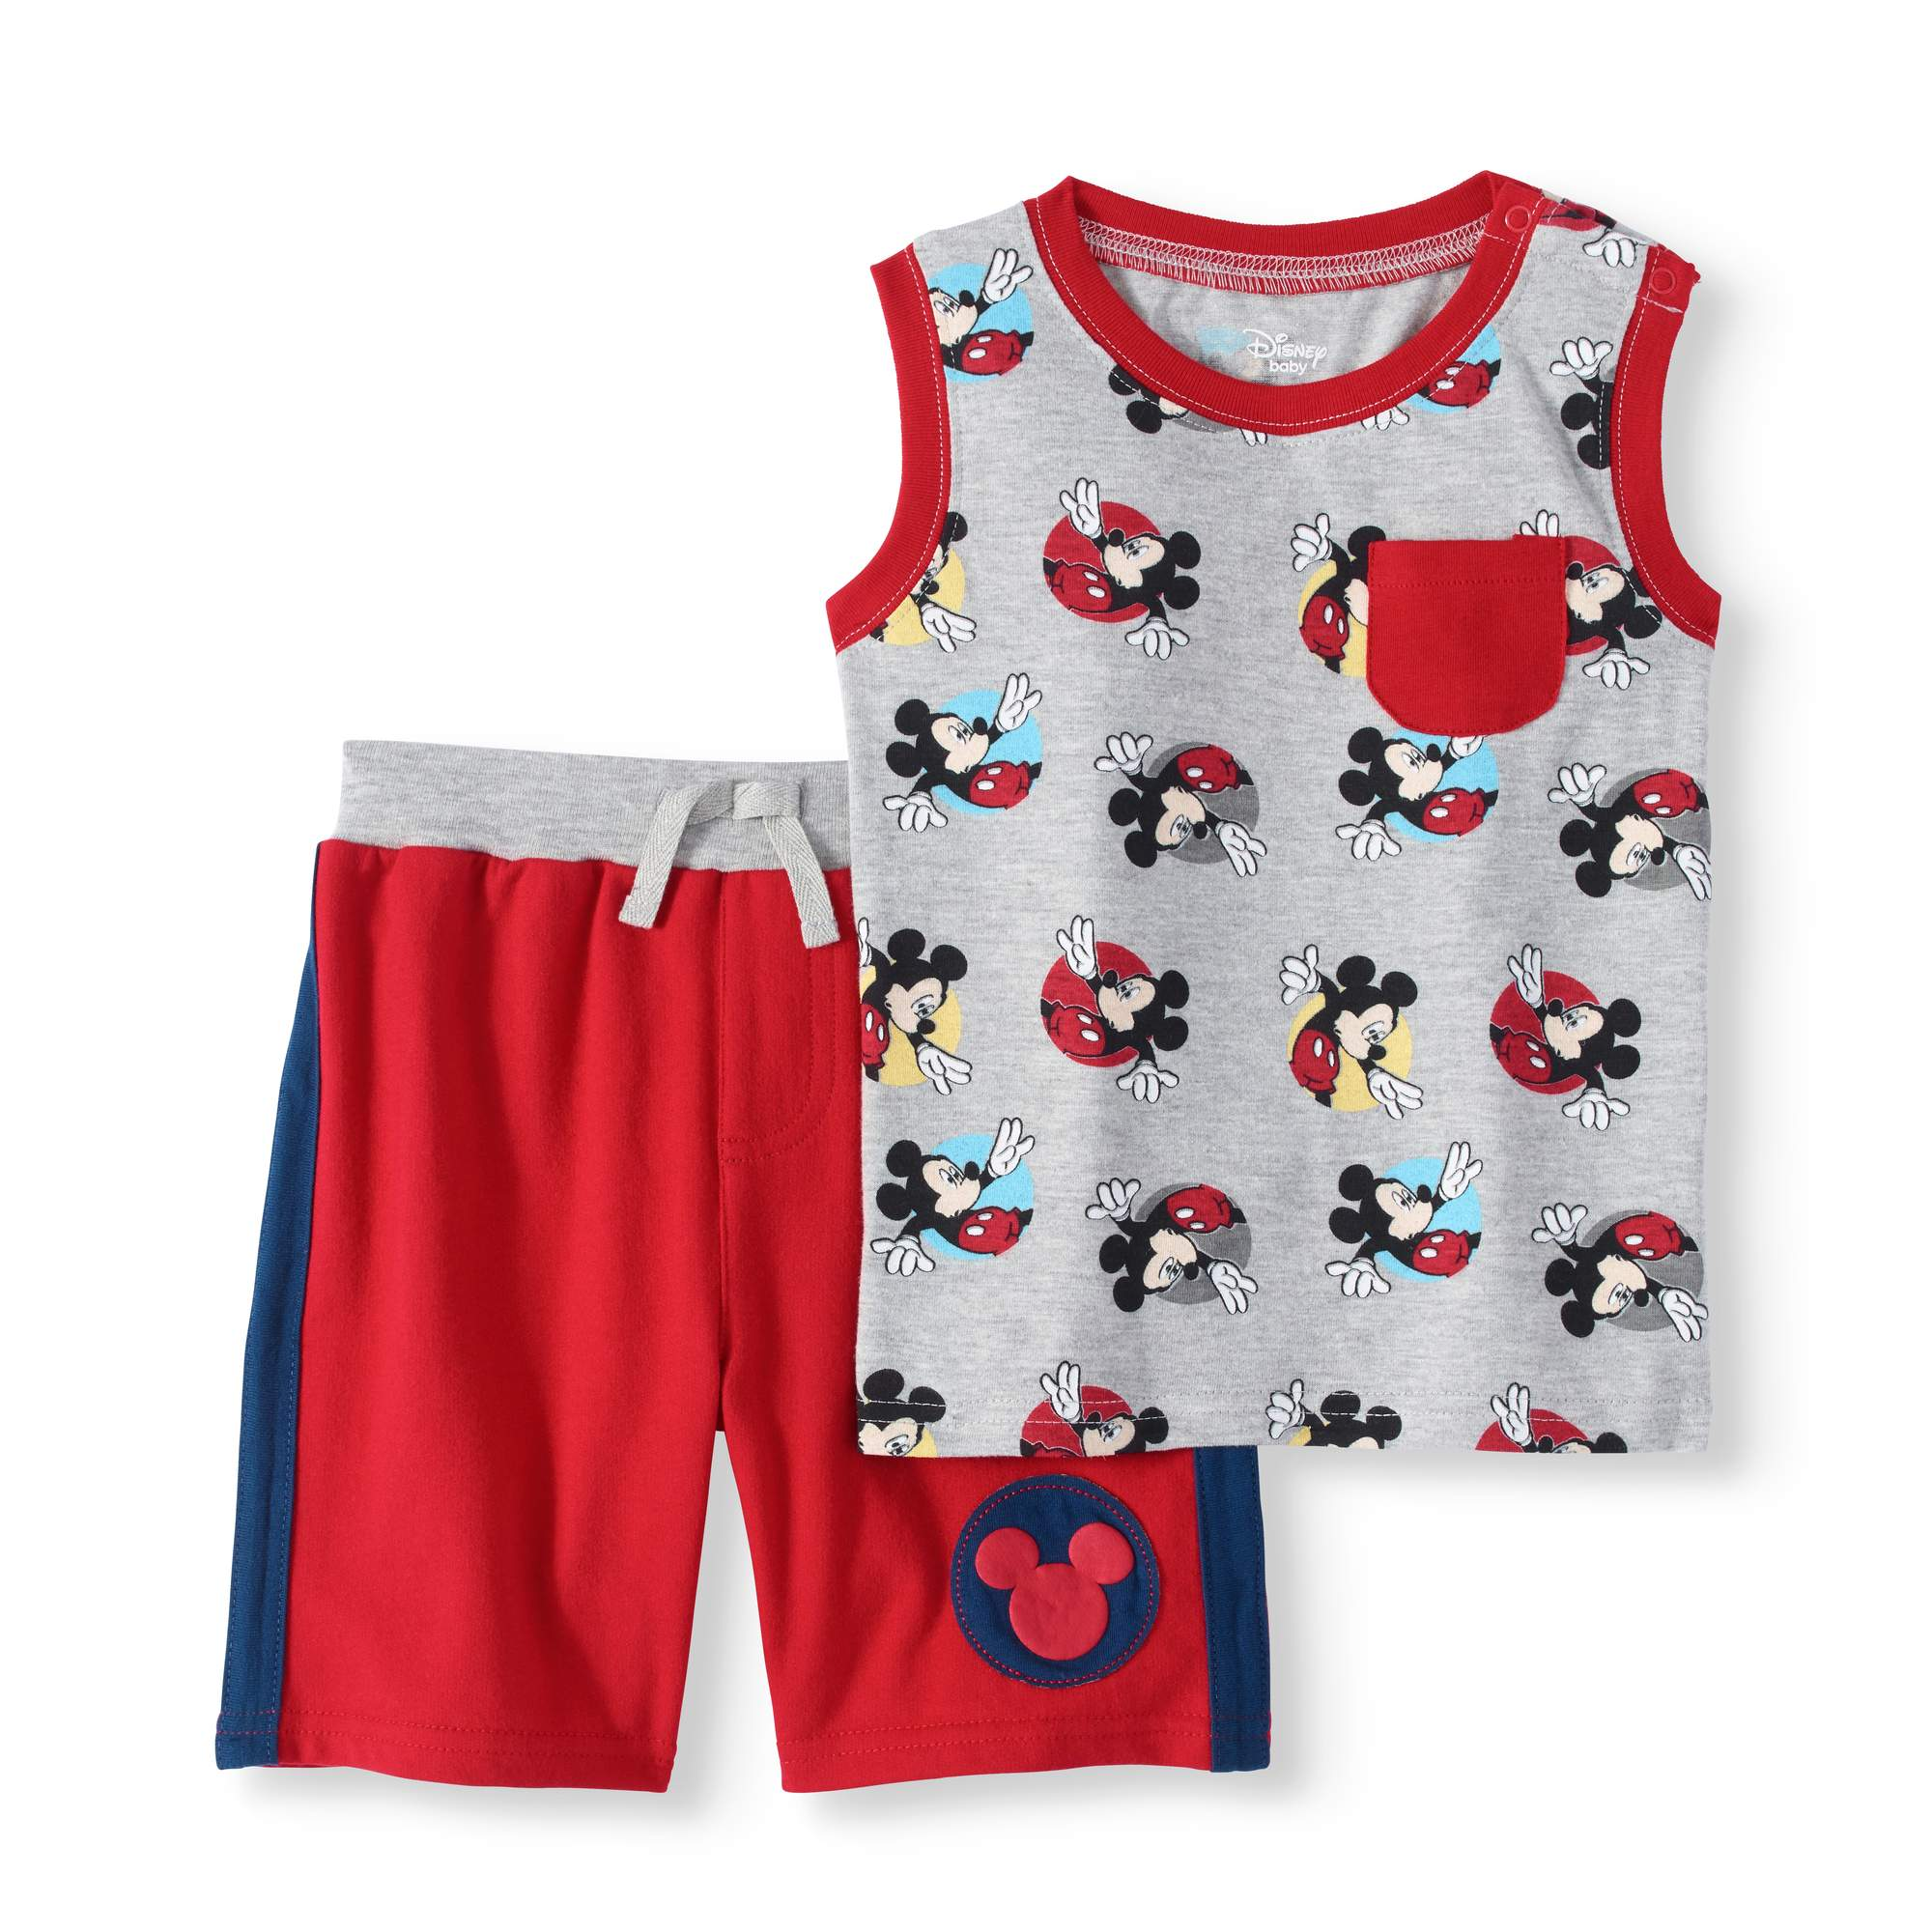 Baby Boy Tank Top & Shorts, 2pc Outfit Set